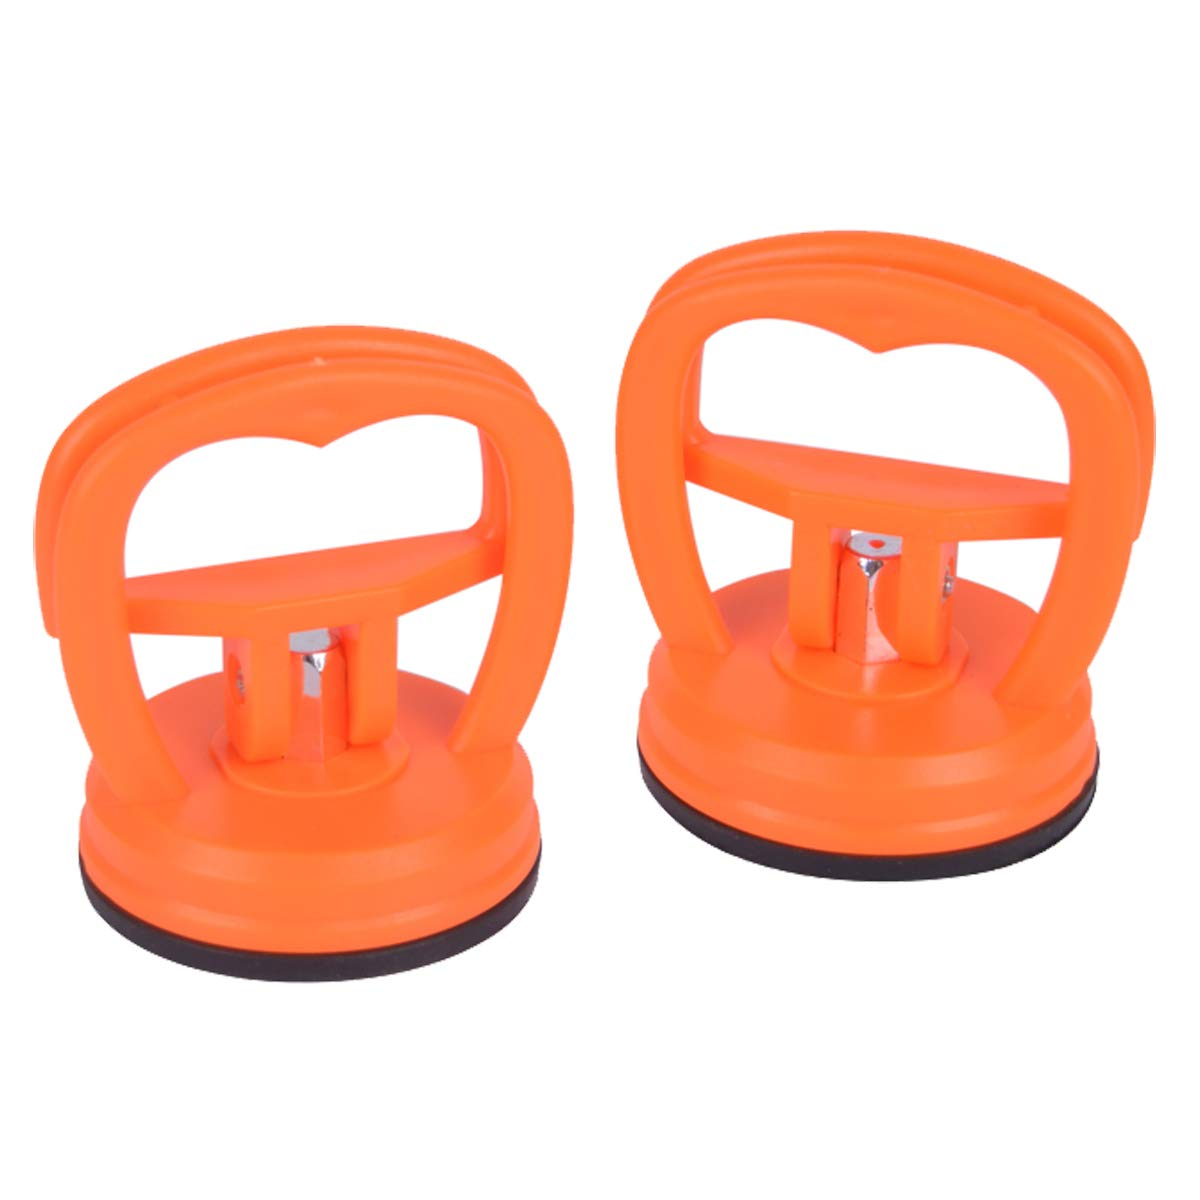 Bleiou 2 Pack Dent Removal Tool Screen Suction Cup Repair Tool for iPhone iPad Tablet iMac